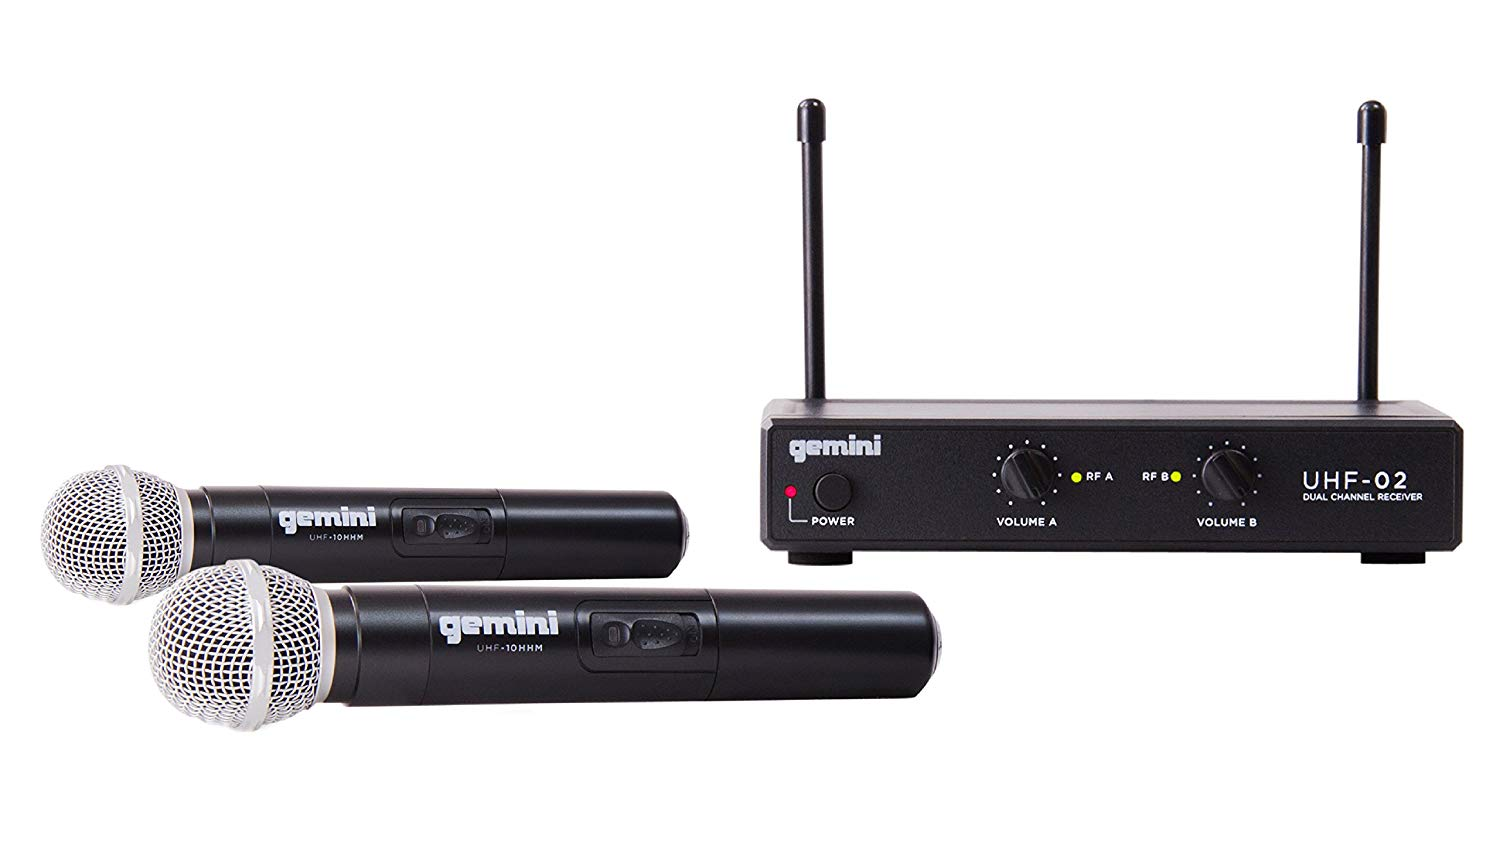 Gemini UHF Series UHF-02M-S12 Professional Audio DJ Equipment Dual Channel Wireless UHF System and Handheld Wireless Microphone with 150ft Operating Range